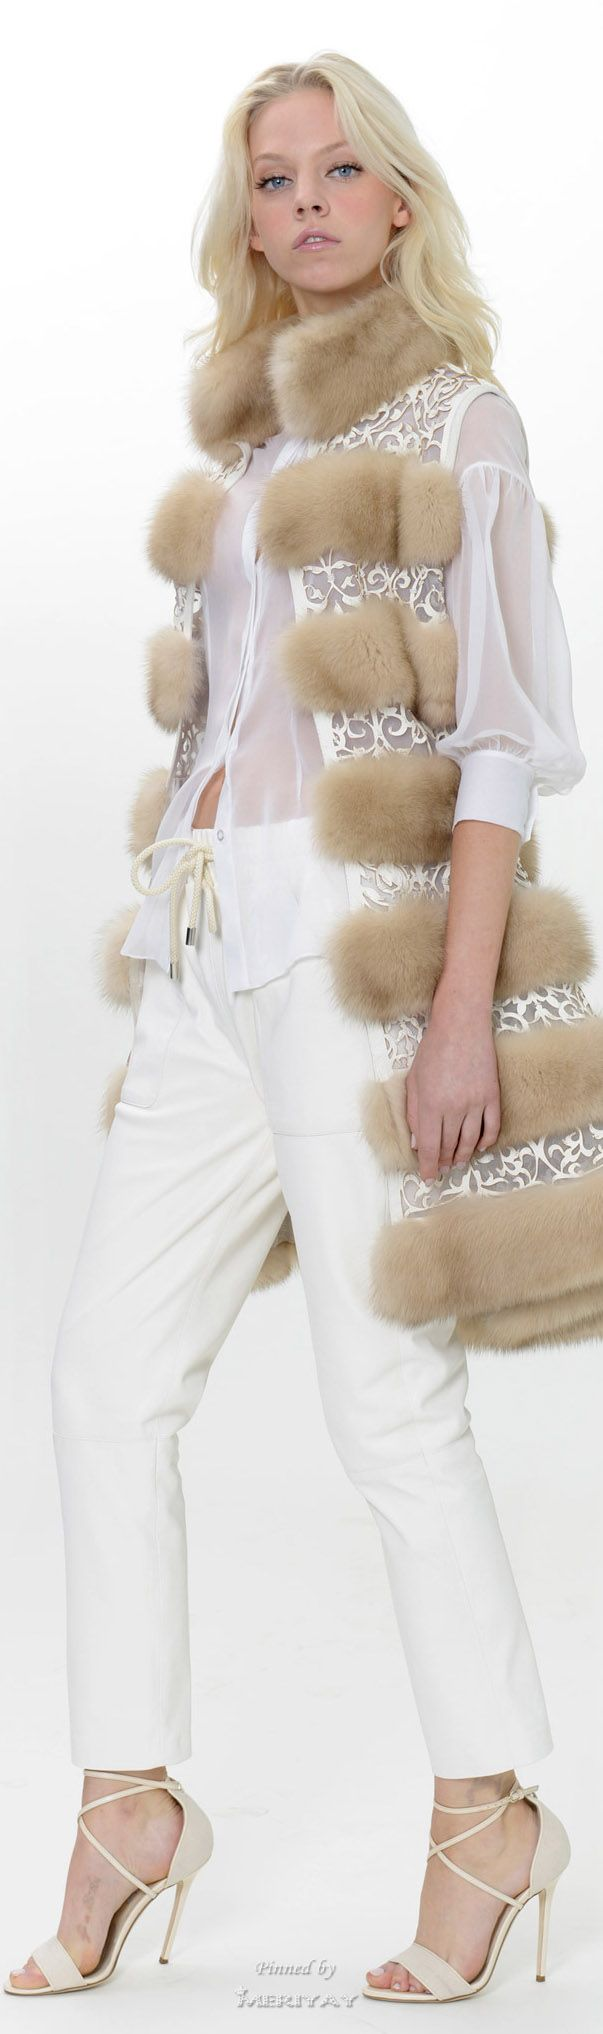 Billionaire Club / karen cox. The Glamorous Life.  Dennis Basso  Resort 2015.